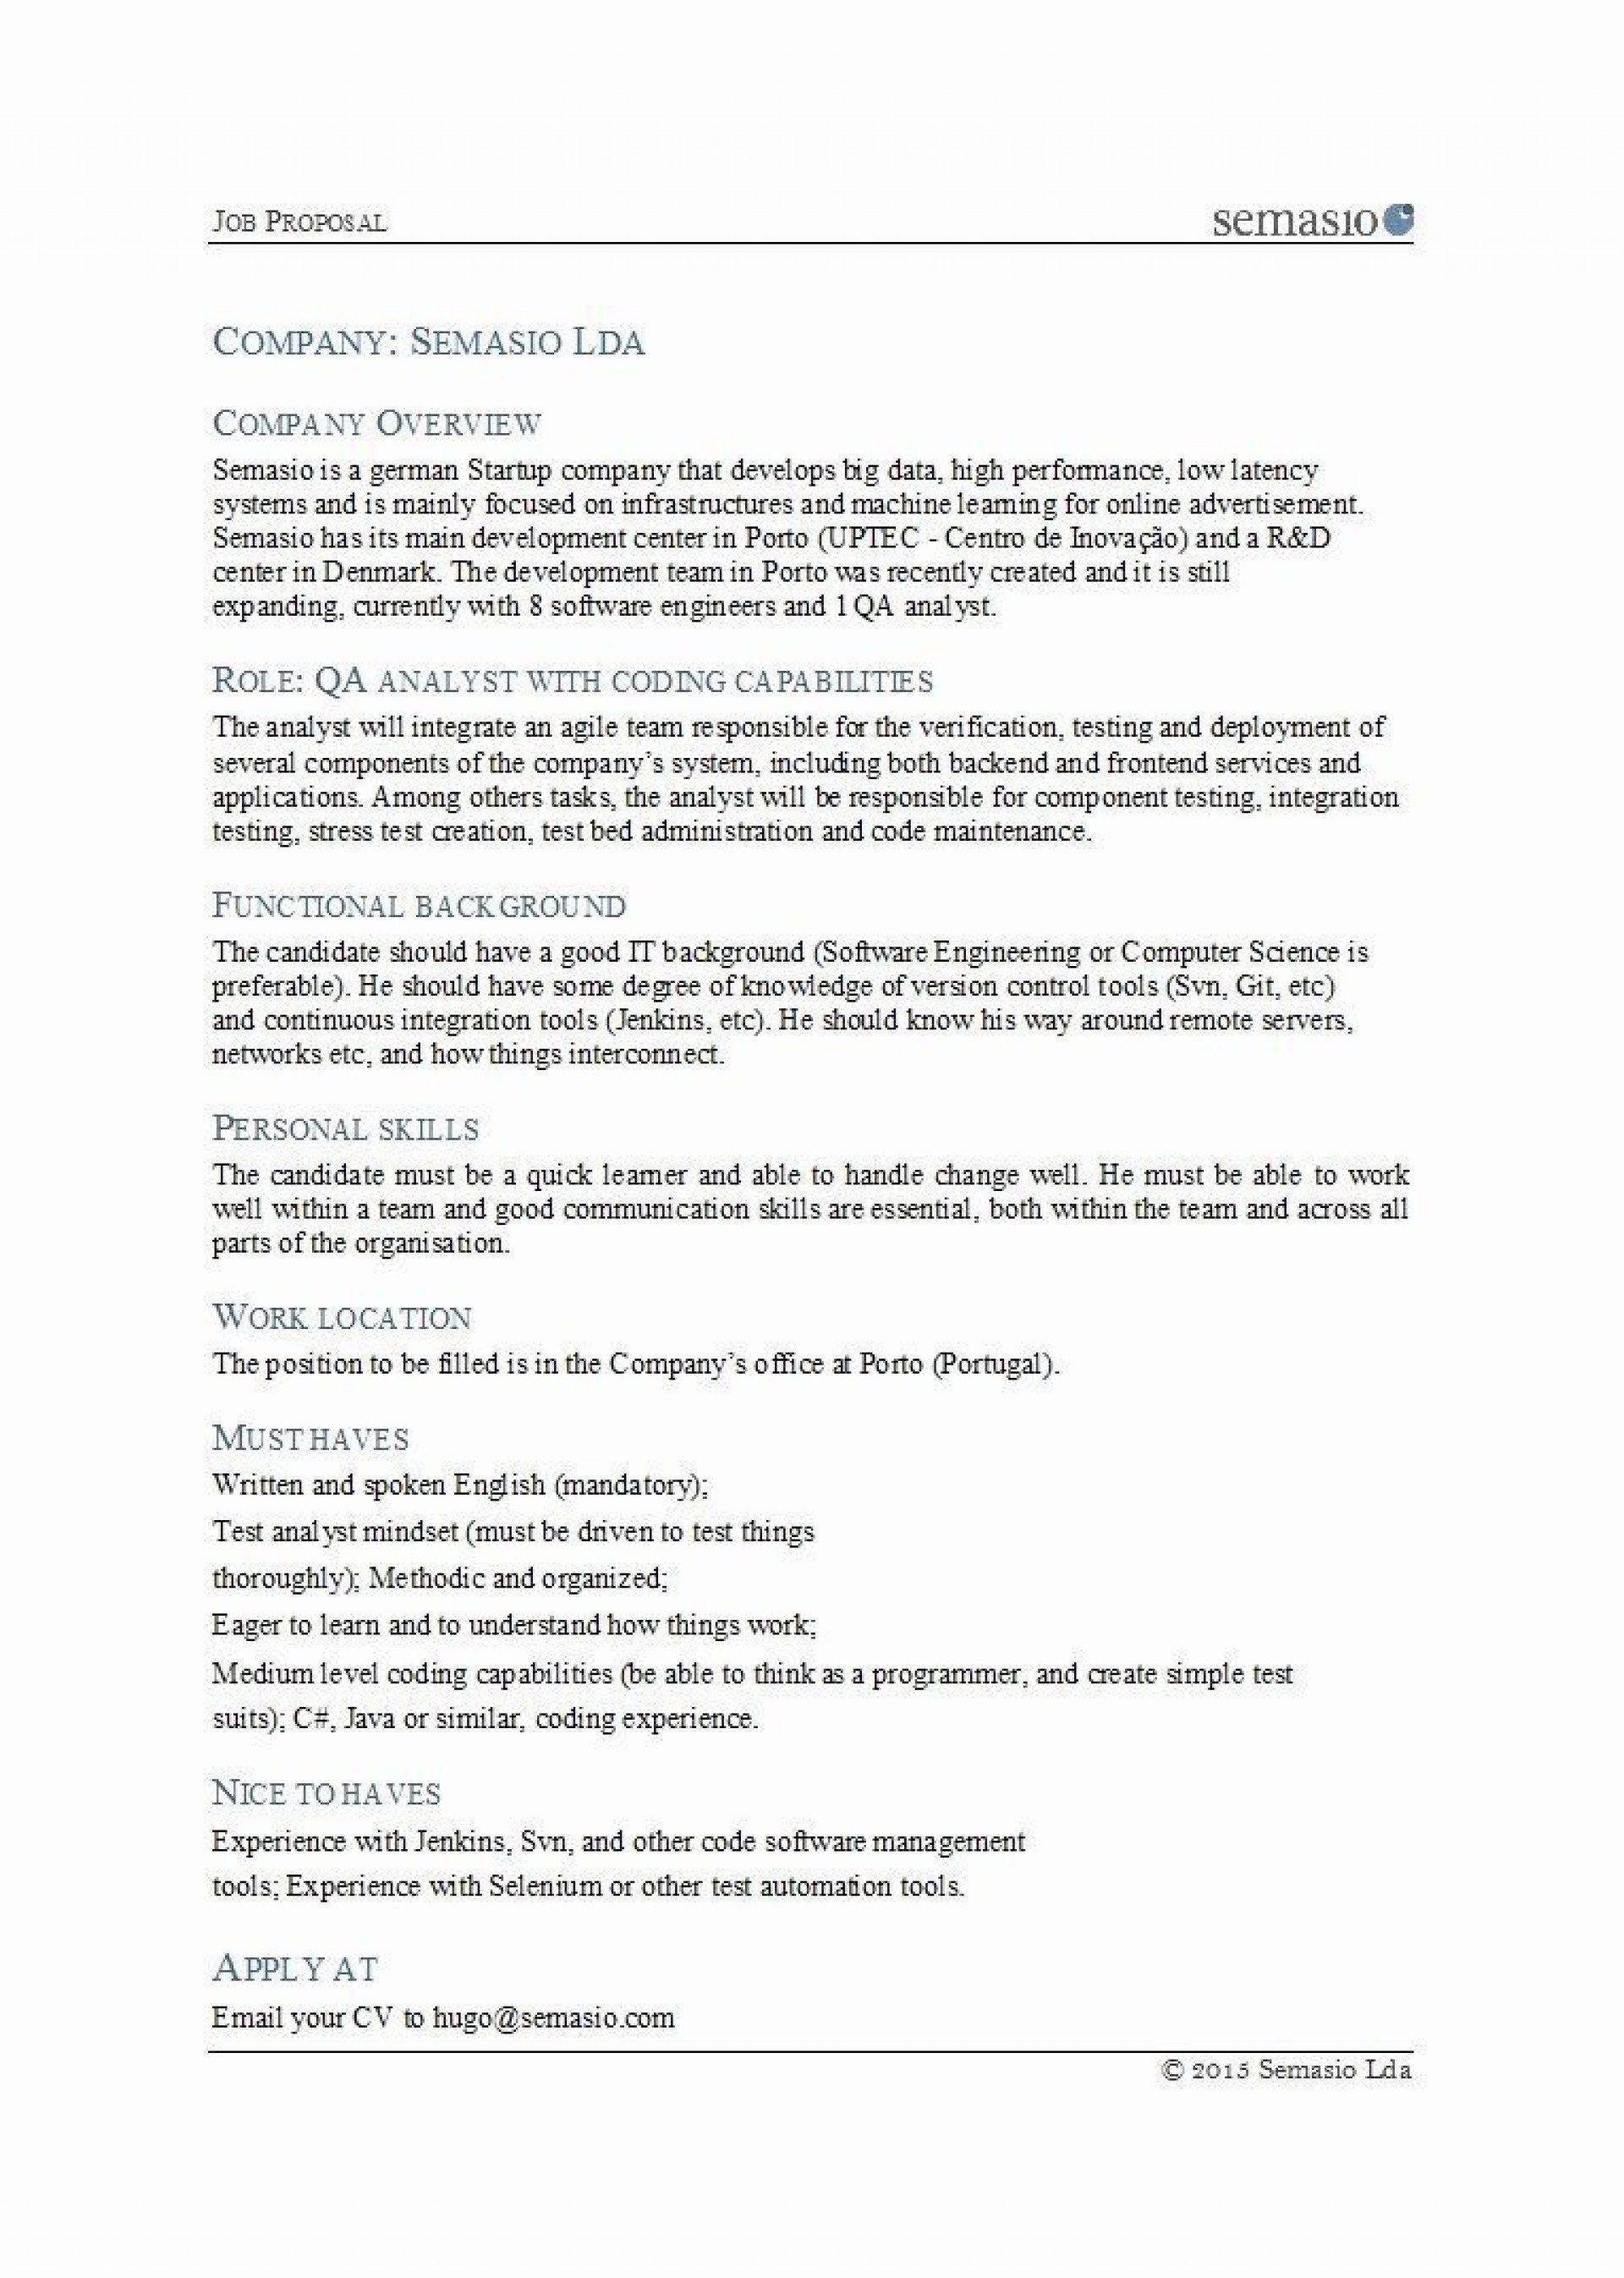 002 Magnificent Writing A Job Proposal Template Sample High Def Full